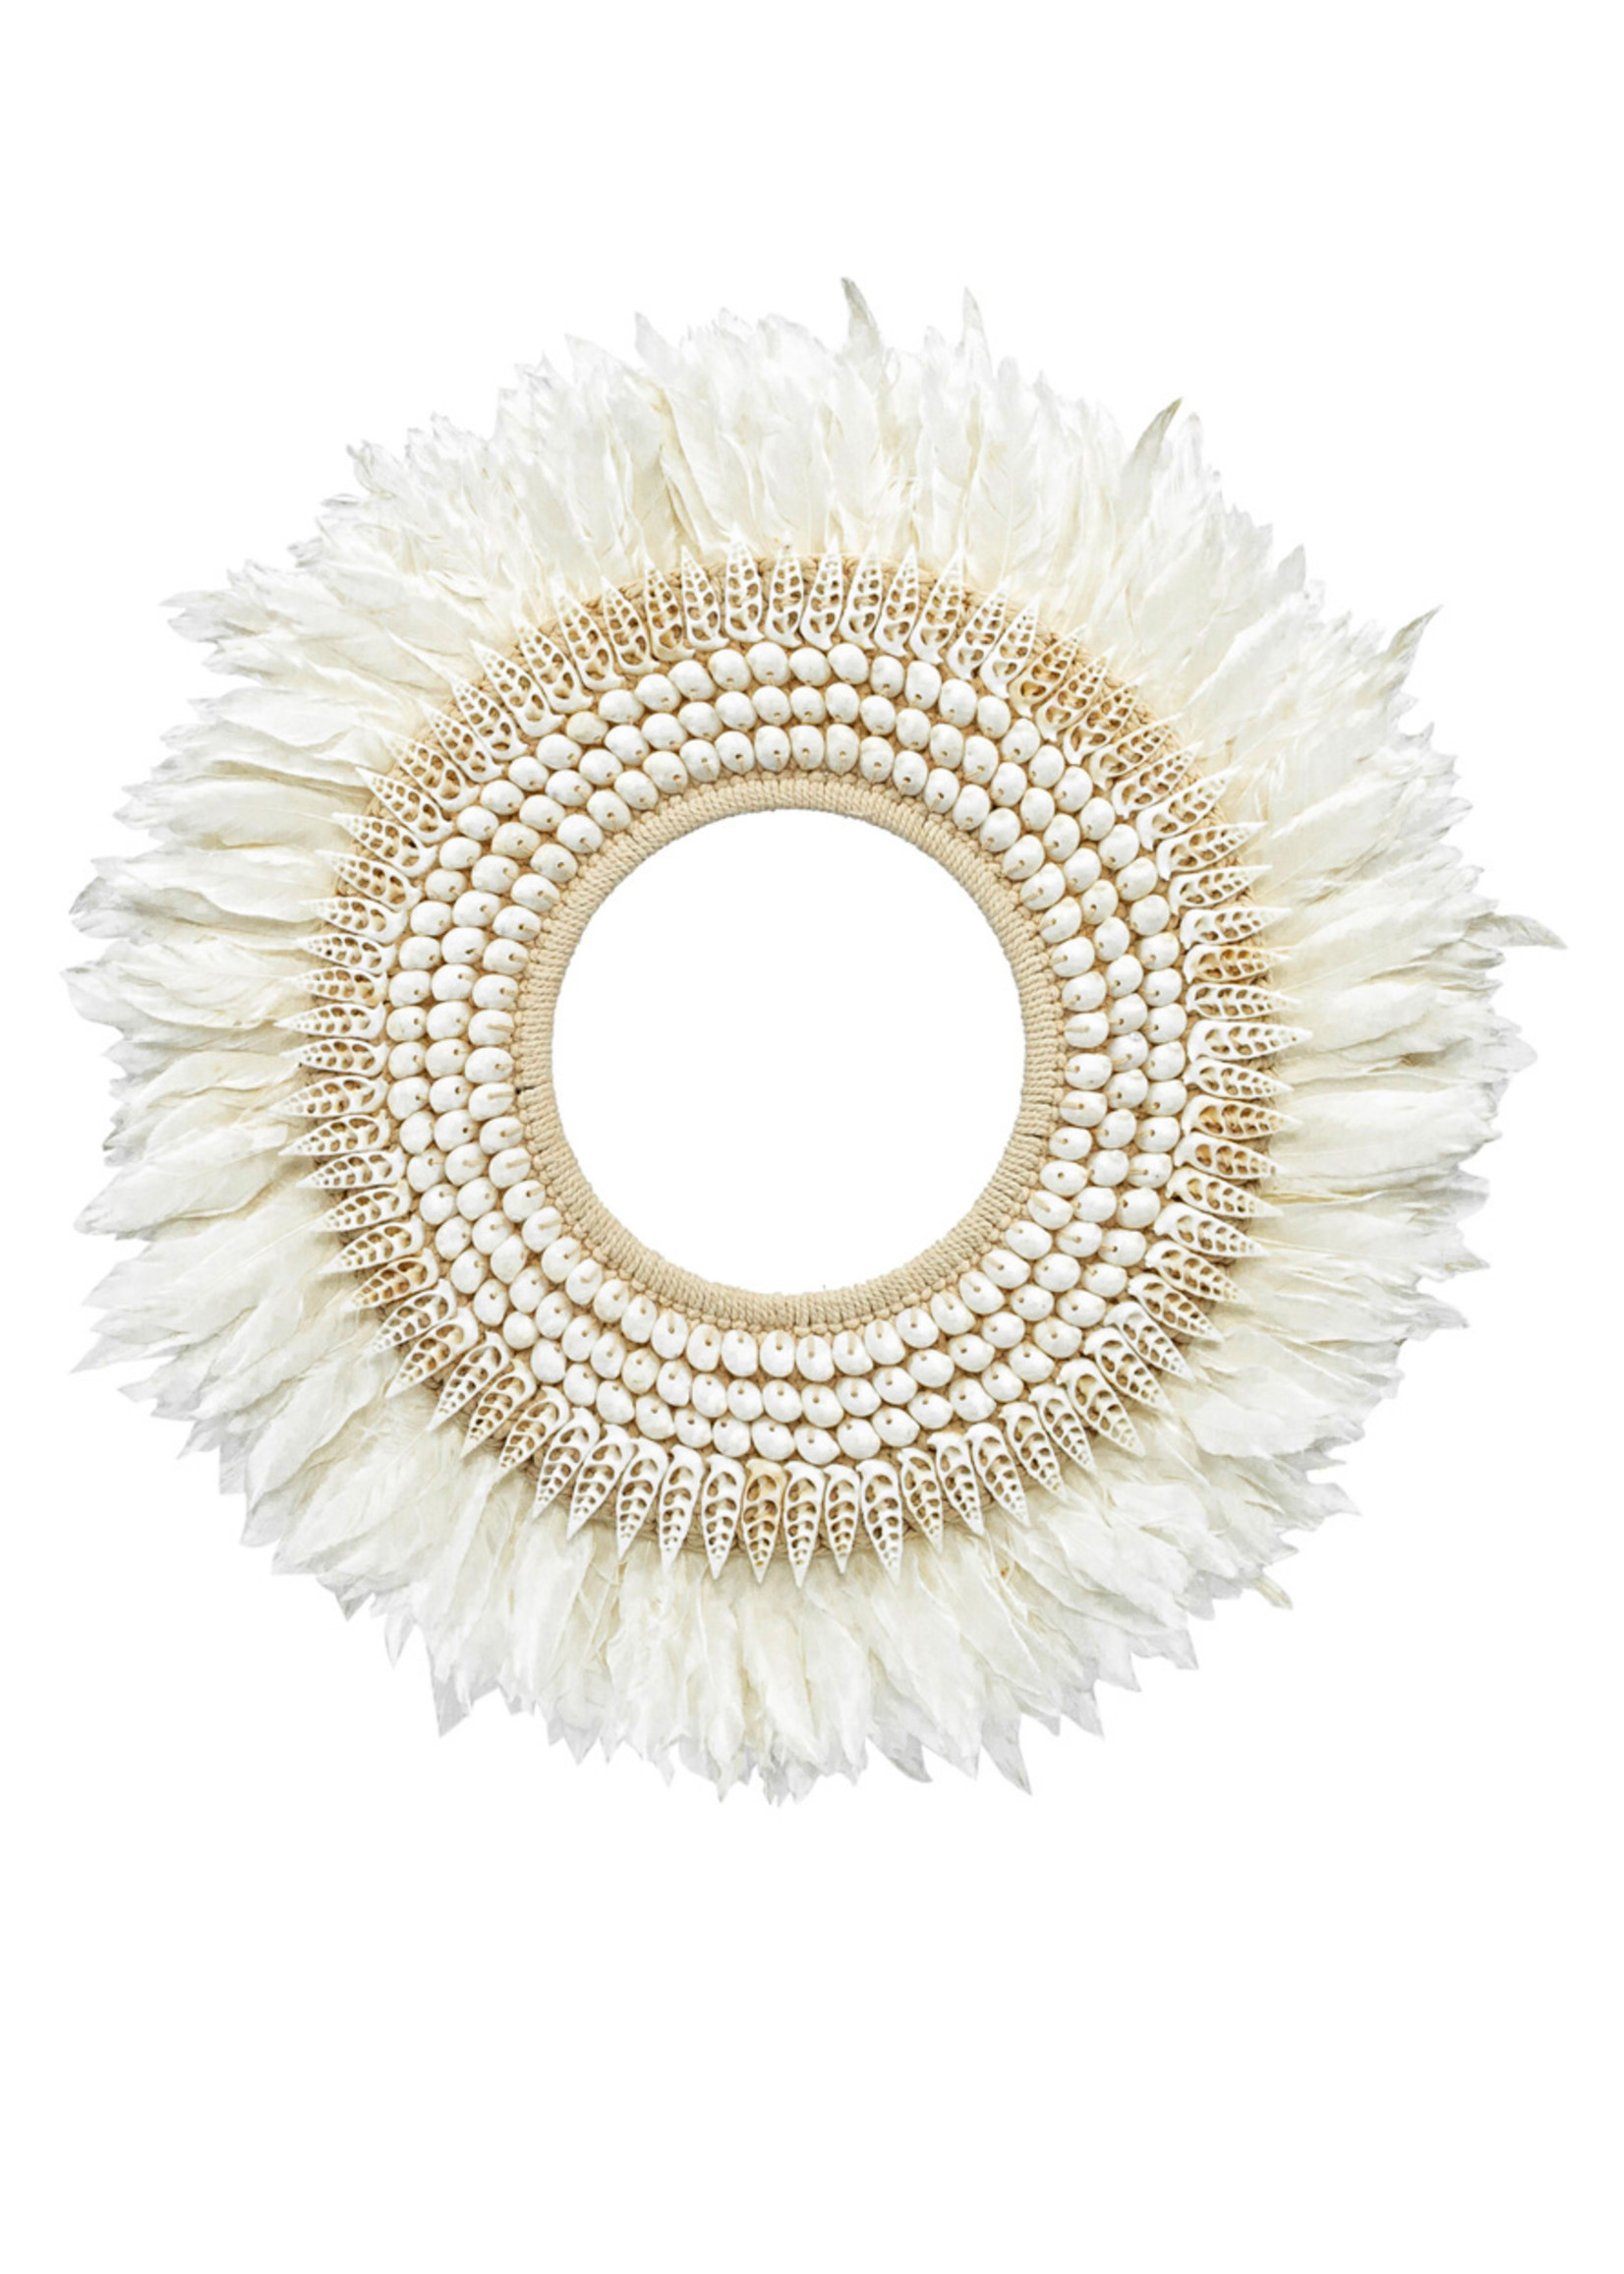 The Hainan Feather Hoop - Large